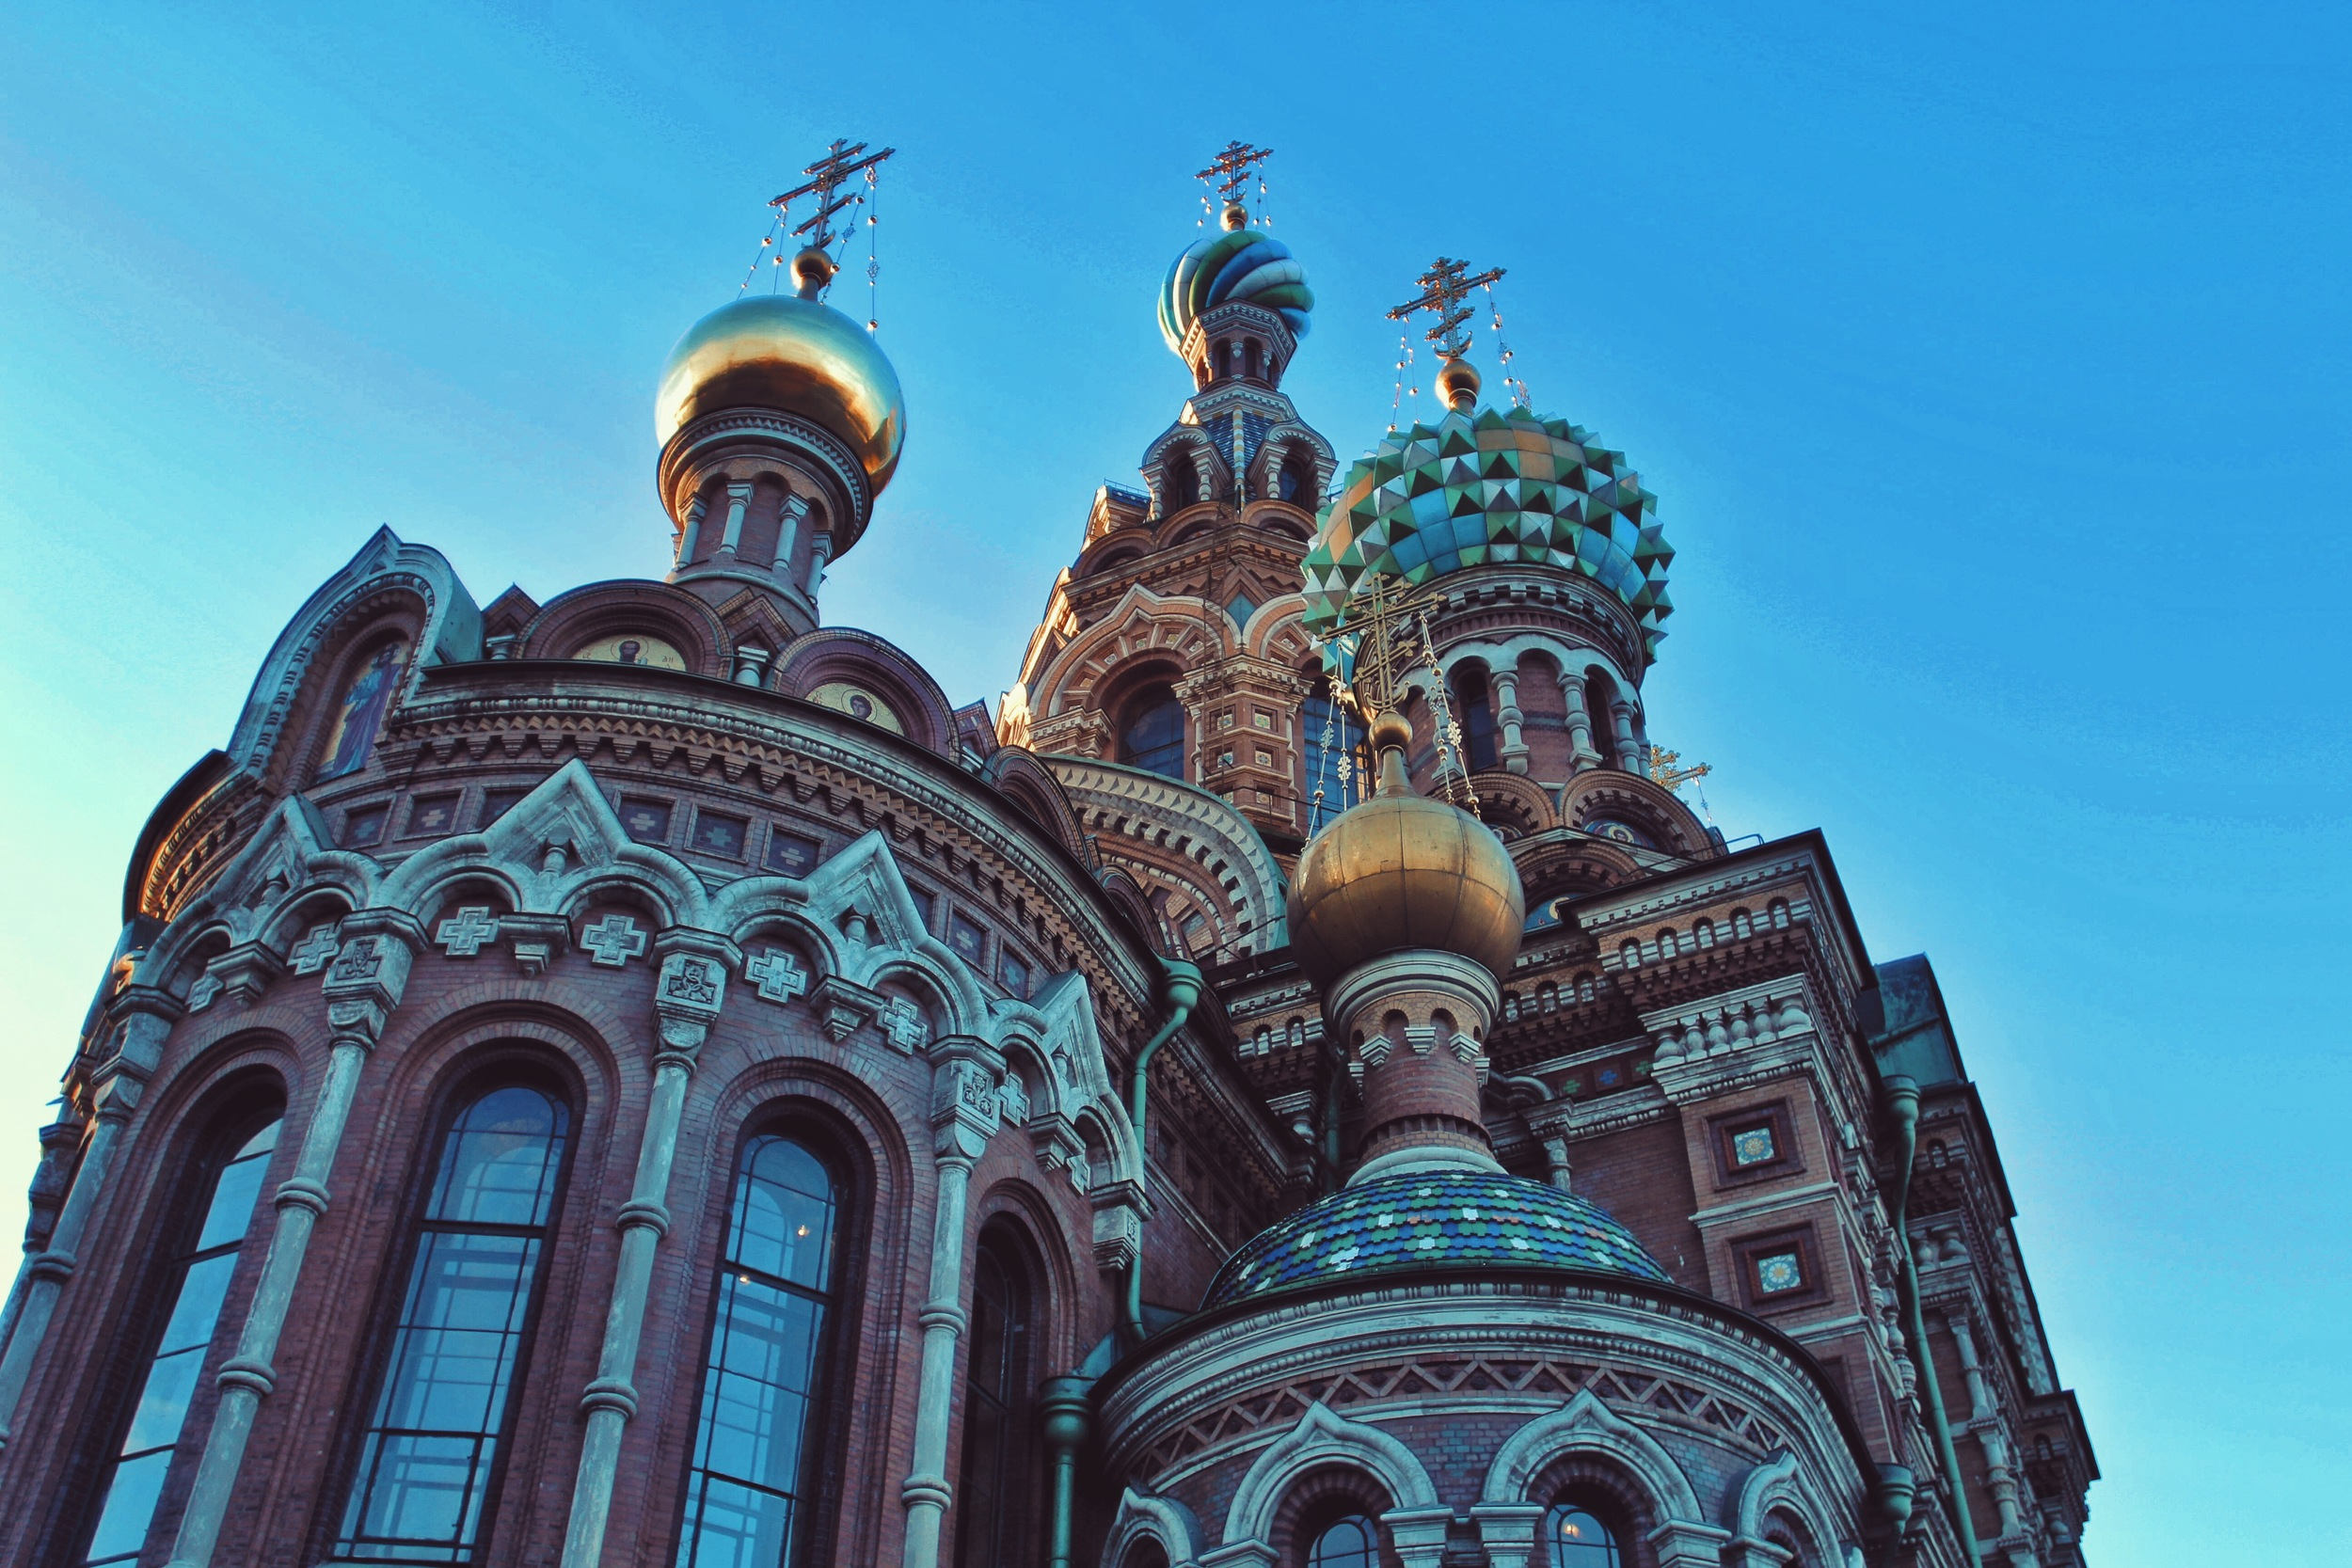 Architecture shot of a cathedral from travels in Russia